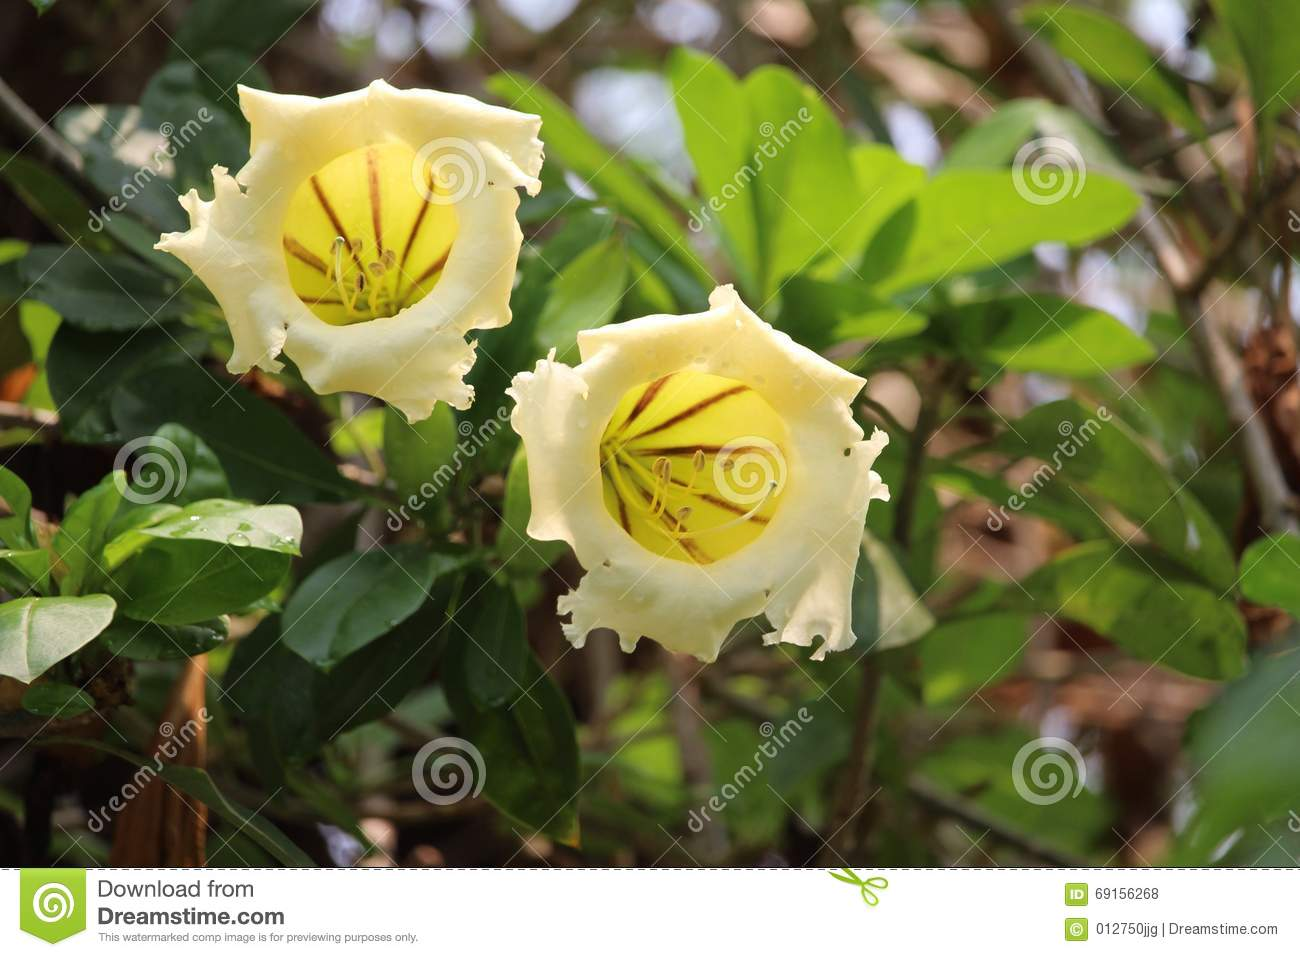 Large yellow and white tubular flowers on tree at chatuchak park royalty free stock photo mightylinksfo